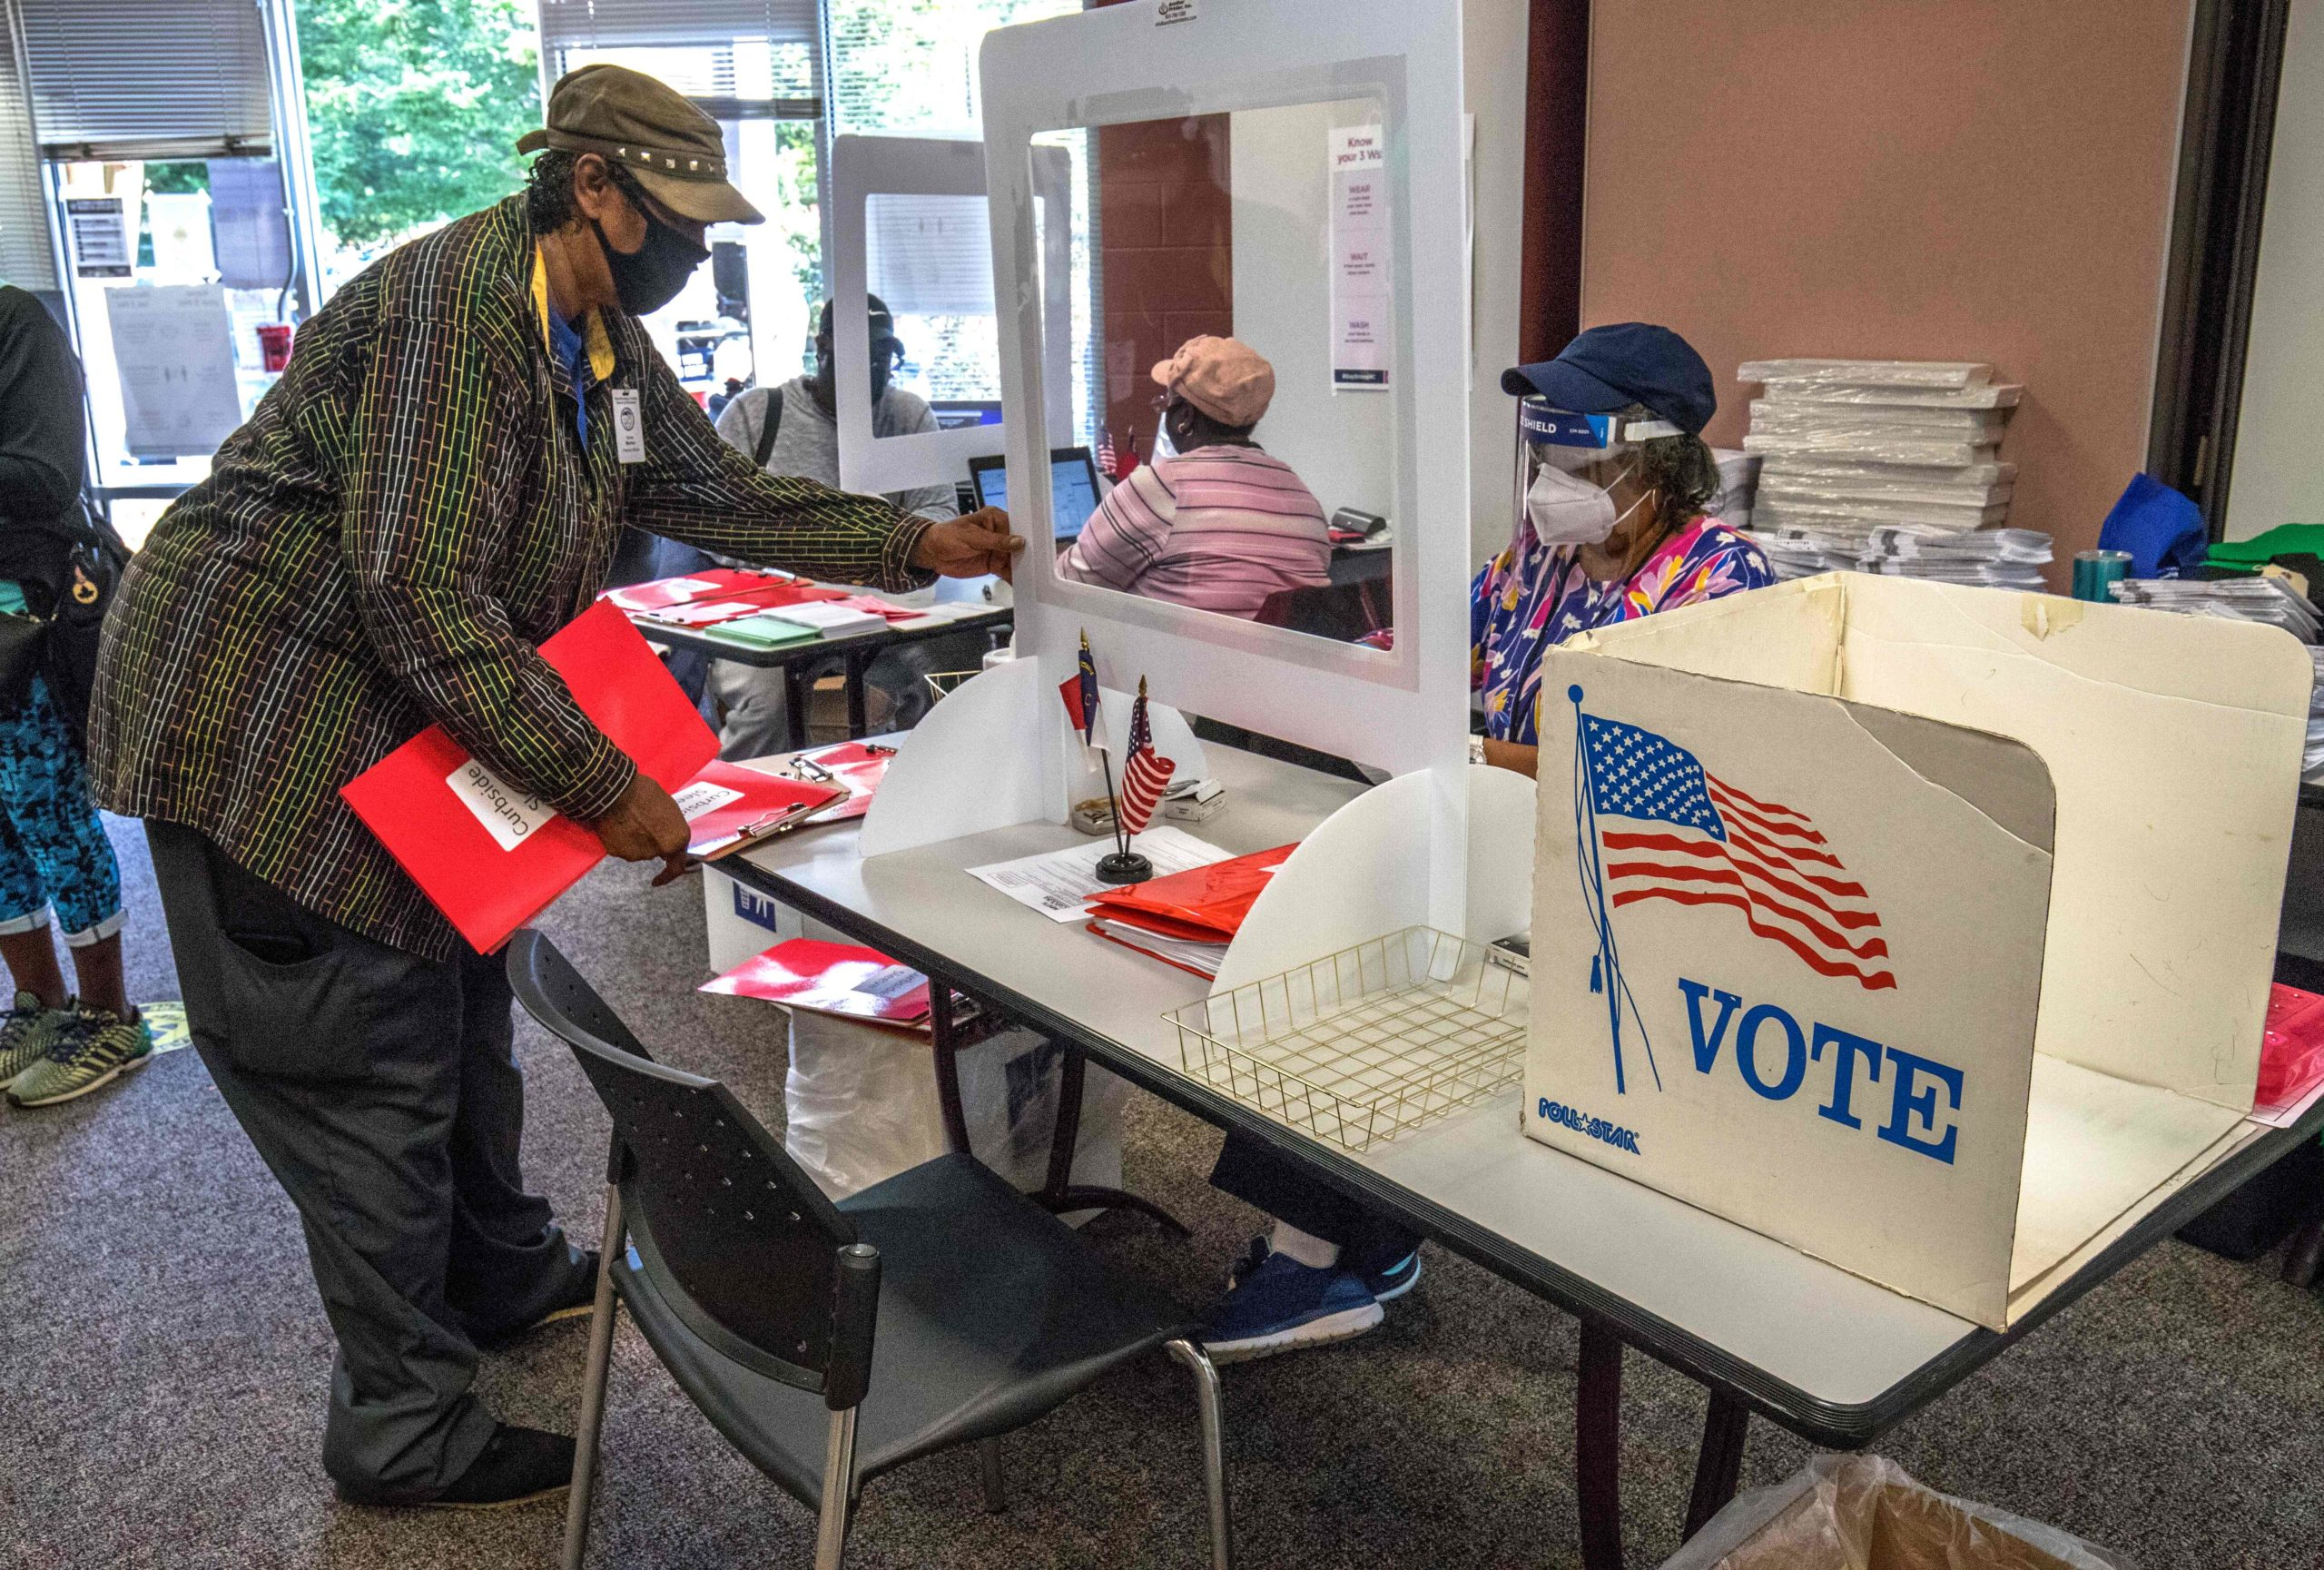 A poll worker (R) assists voters as they enter the West Boulevard branch of the Mecklenburg County library in Charlotte, North Carolina, on October 15, 2020, during the first day of early voting. (Photo by Grant Baldwin / AFP) (Photo by GRANT BALDWIN/AFP via Getty Images)